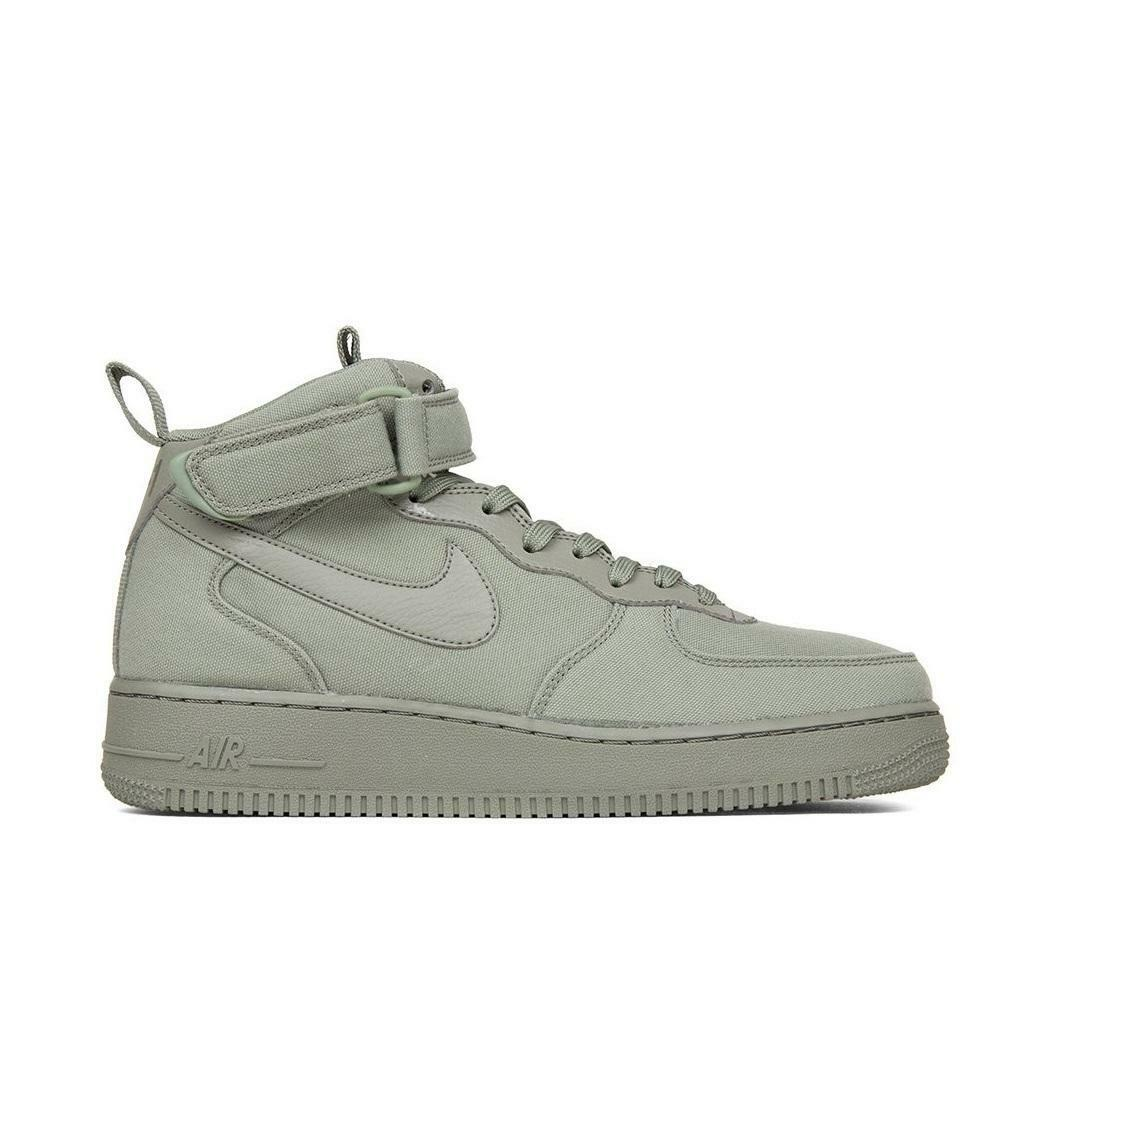 Mens NIKE AIR FORCE 1 MID 07 CANVAS Trainers AH6770 001